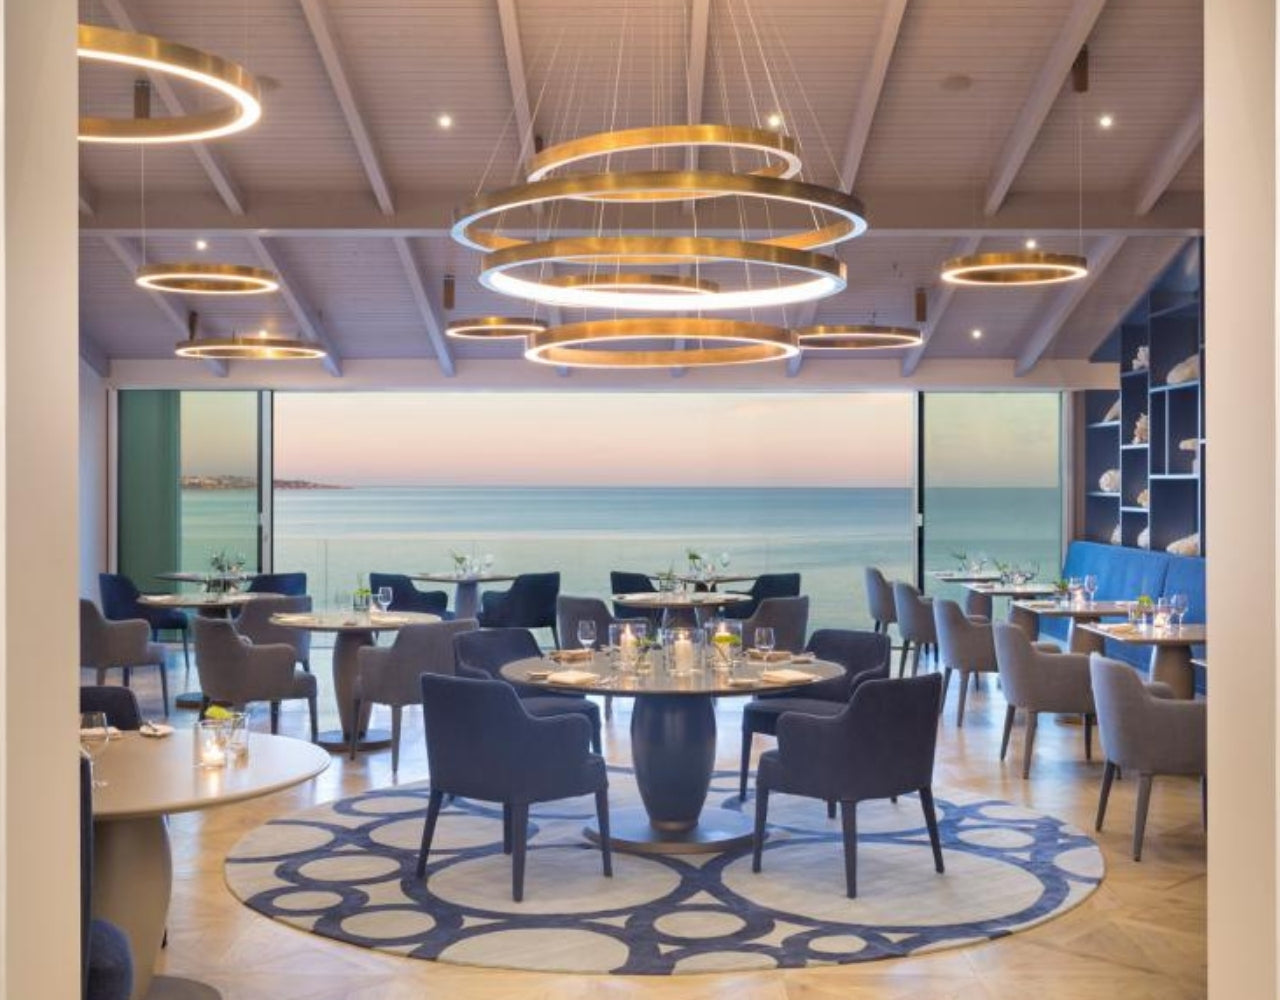 Ocean Restaurant in Algarve Portugal